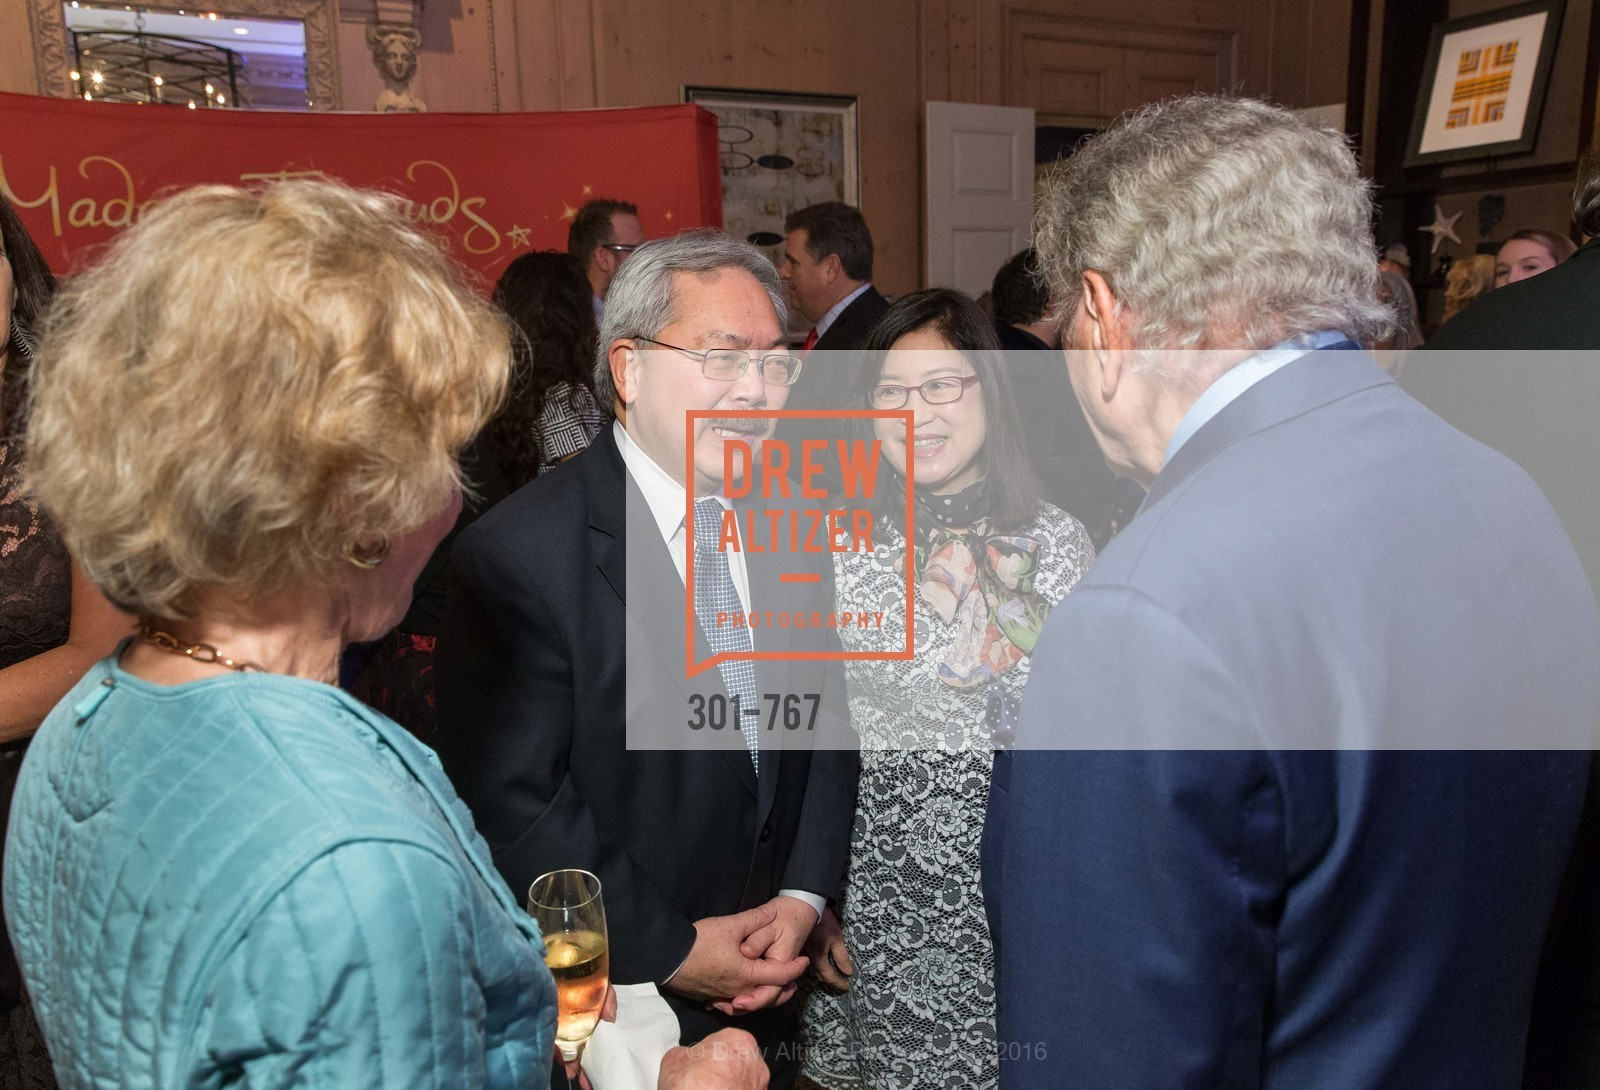 Ed Lee, Anita Lee, A Special Reception with Tony Bennett, The Fairmont, San Francisco, The Penthouse Suite, January 26th, 2016,Drew Altizer, Drew Altizer Photography, full-service agency, private events, San Francisco photographer, photographer california